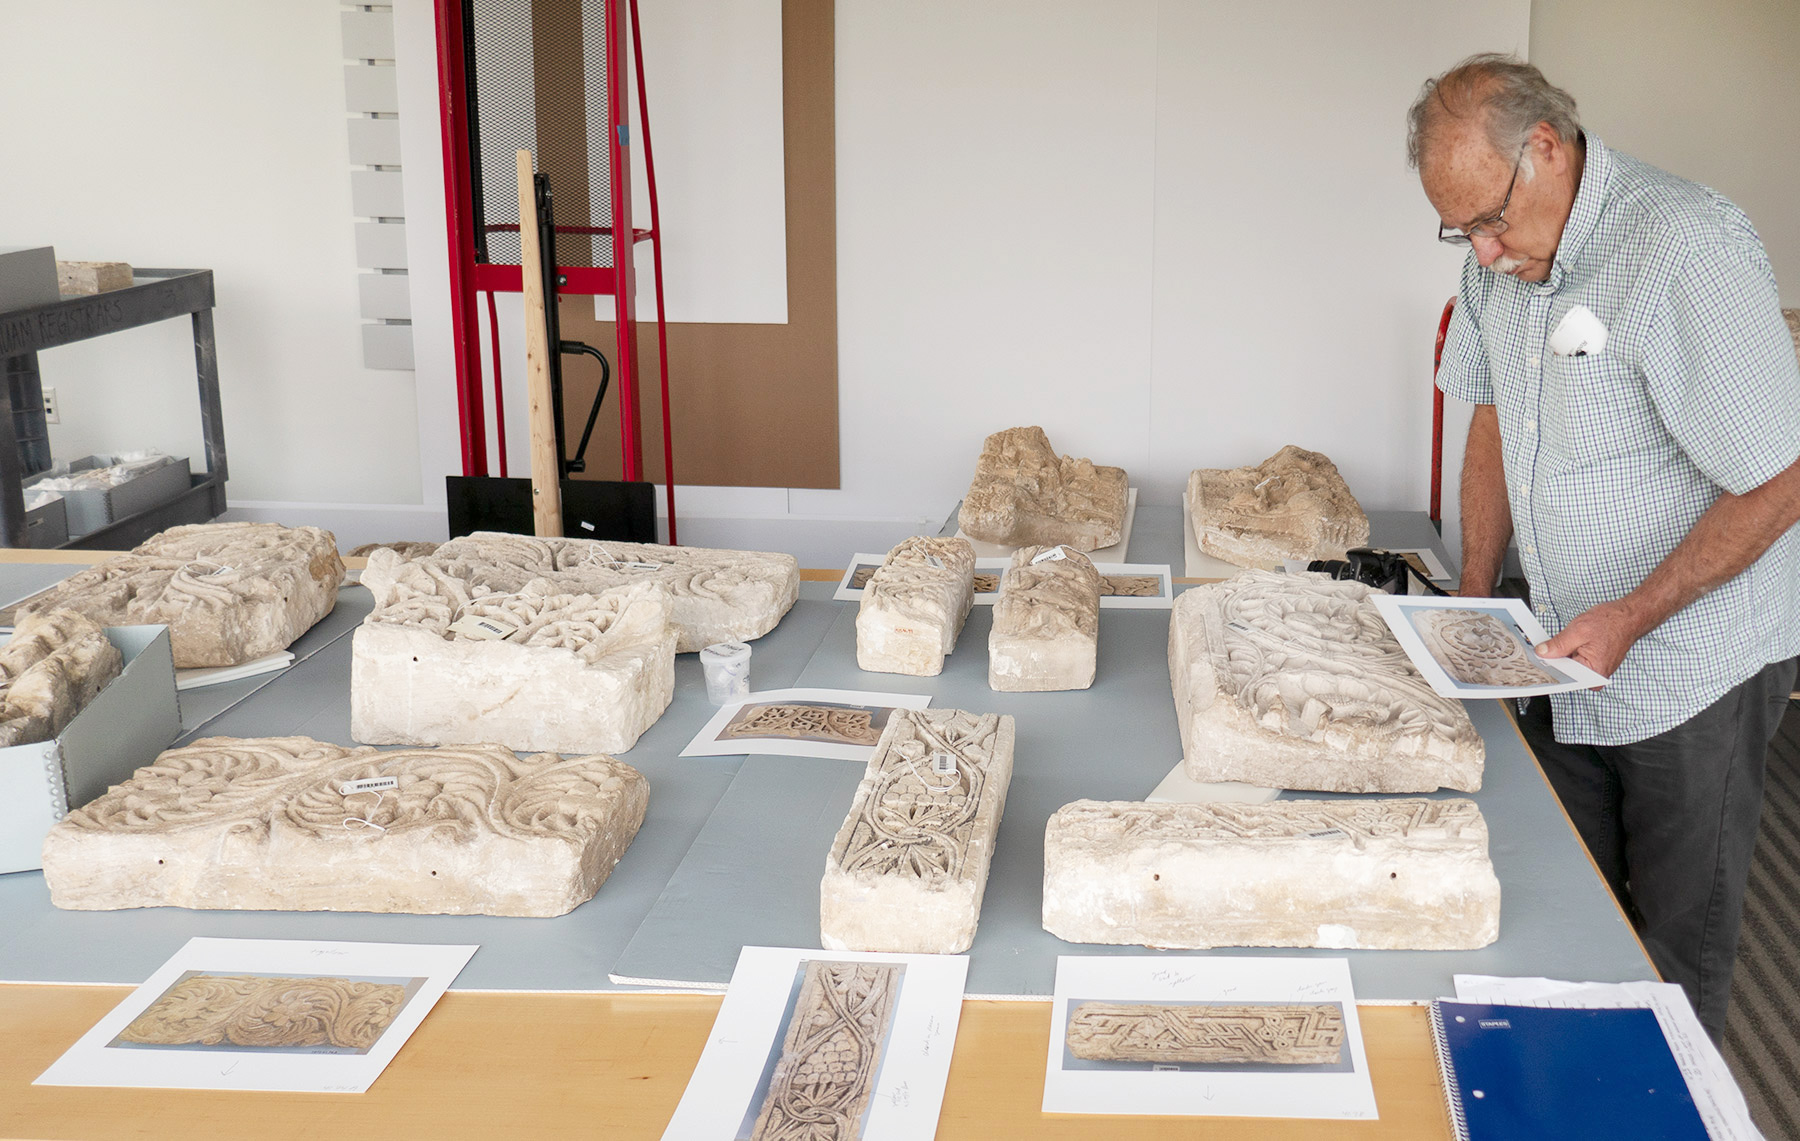 Robert Shure, of Skylight Studios, examines a selection of the original fragments.